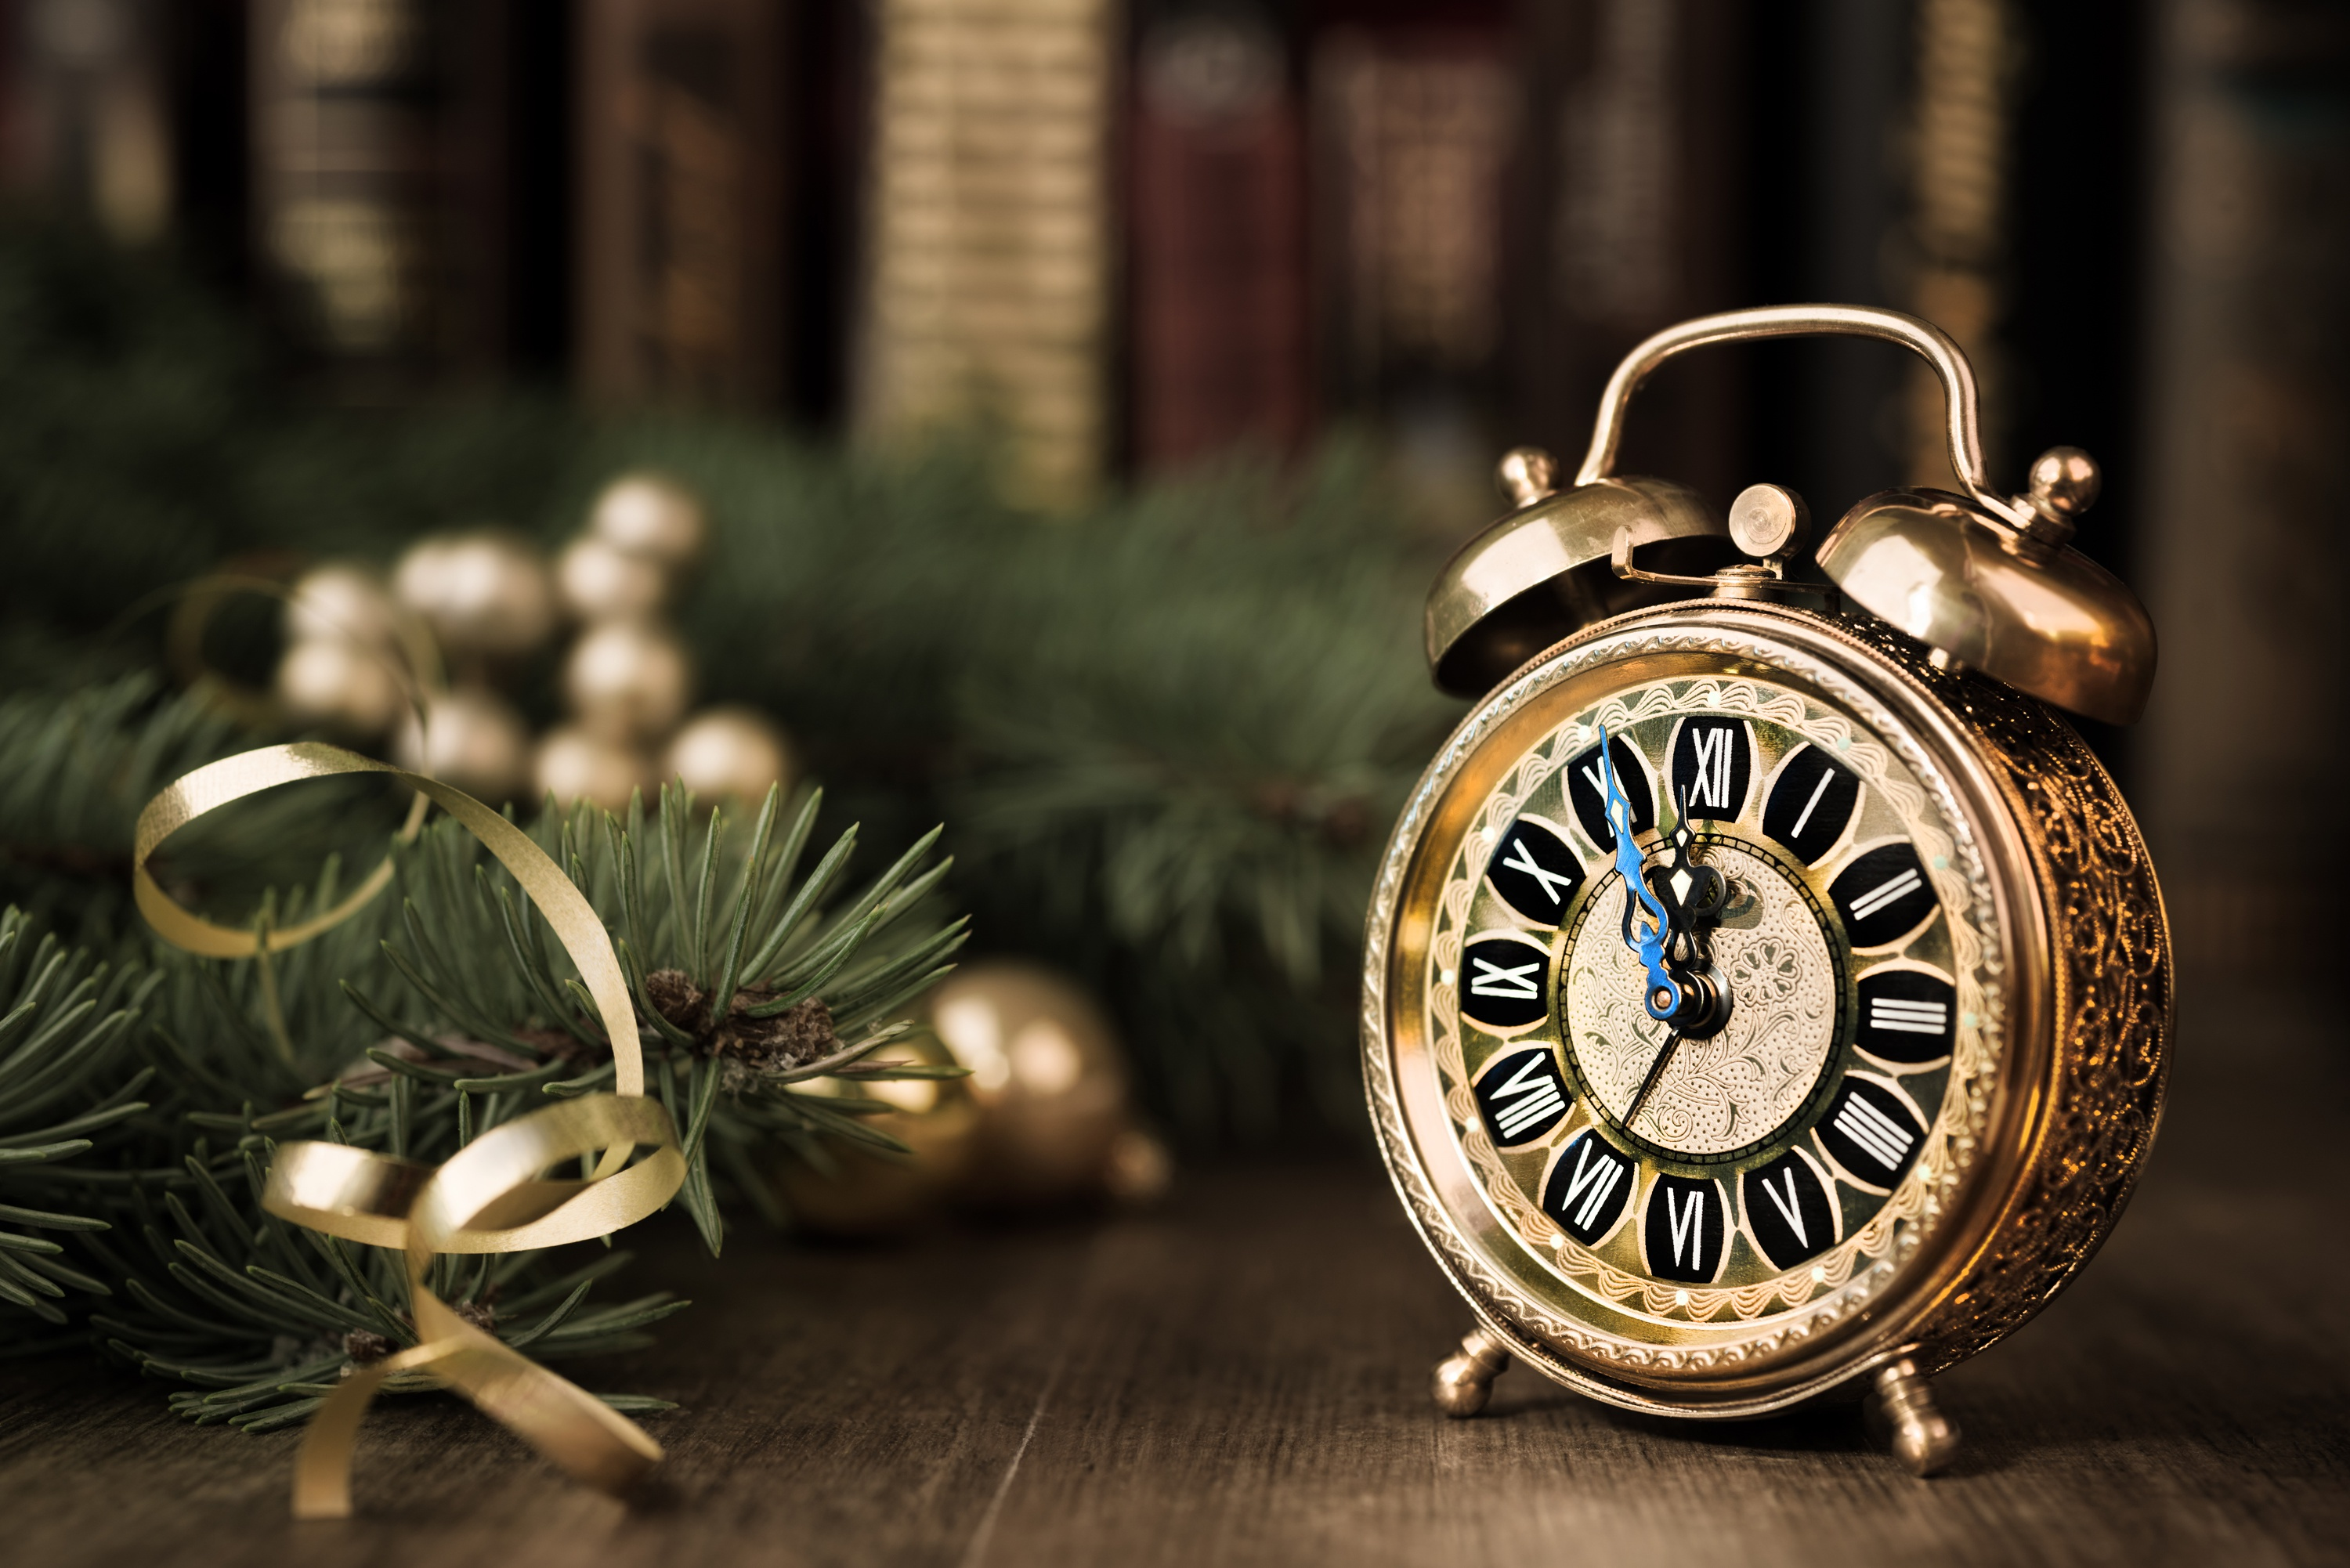 Download wallpaper holiday tree christmas watch